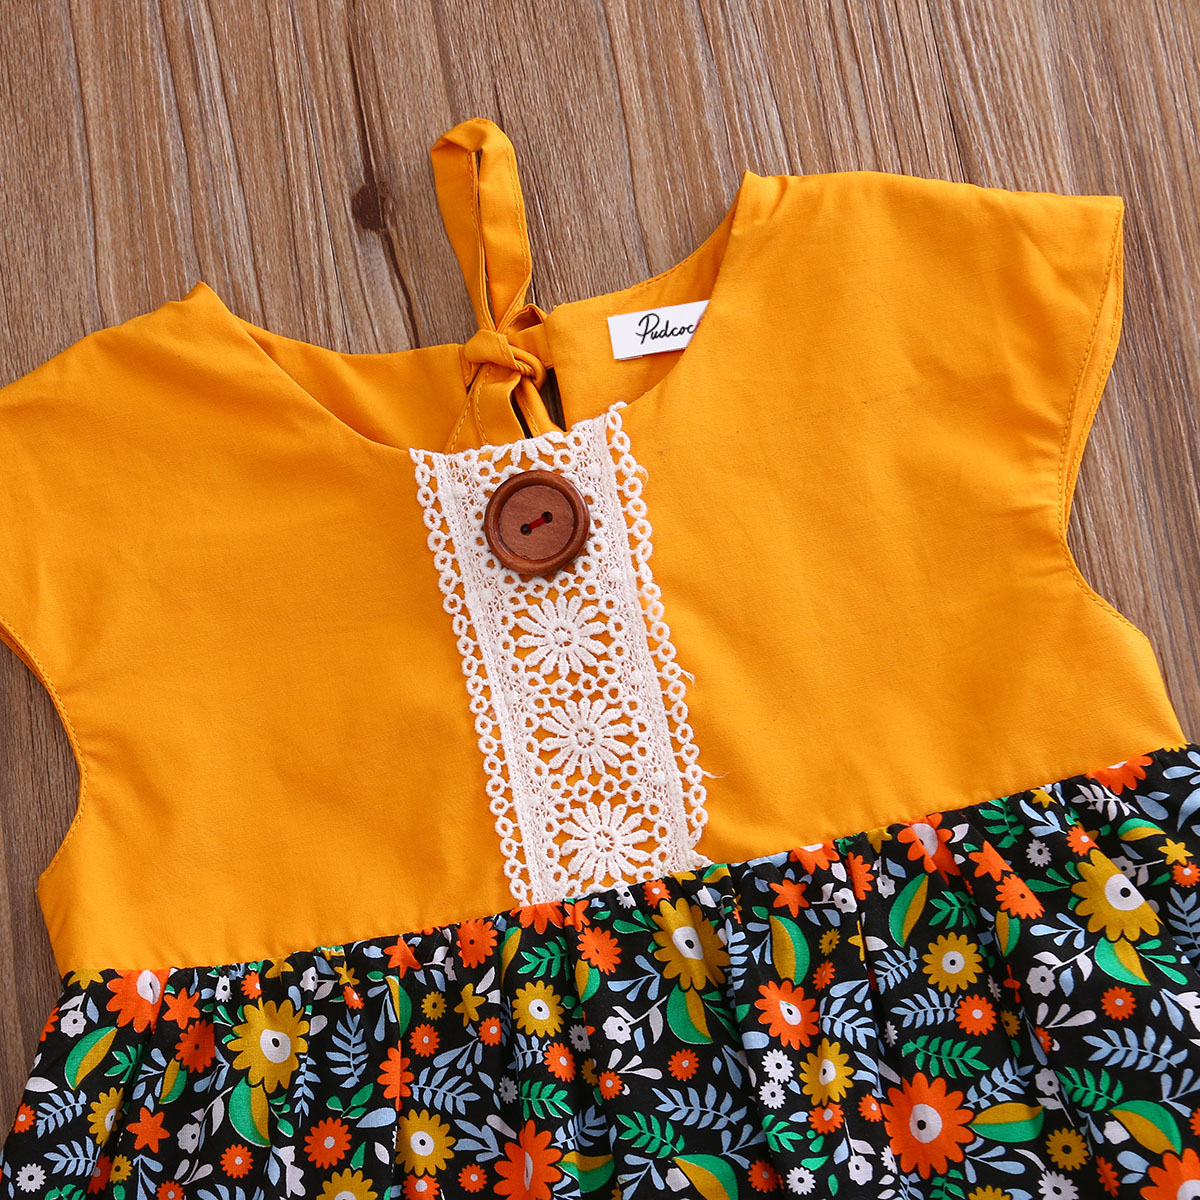 Bohemian-Floral-Toddler-Baby-Kids-Girls-Summer-Lace-Flower-Sundress-Party-Dress-Clothes-0-4T-2